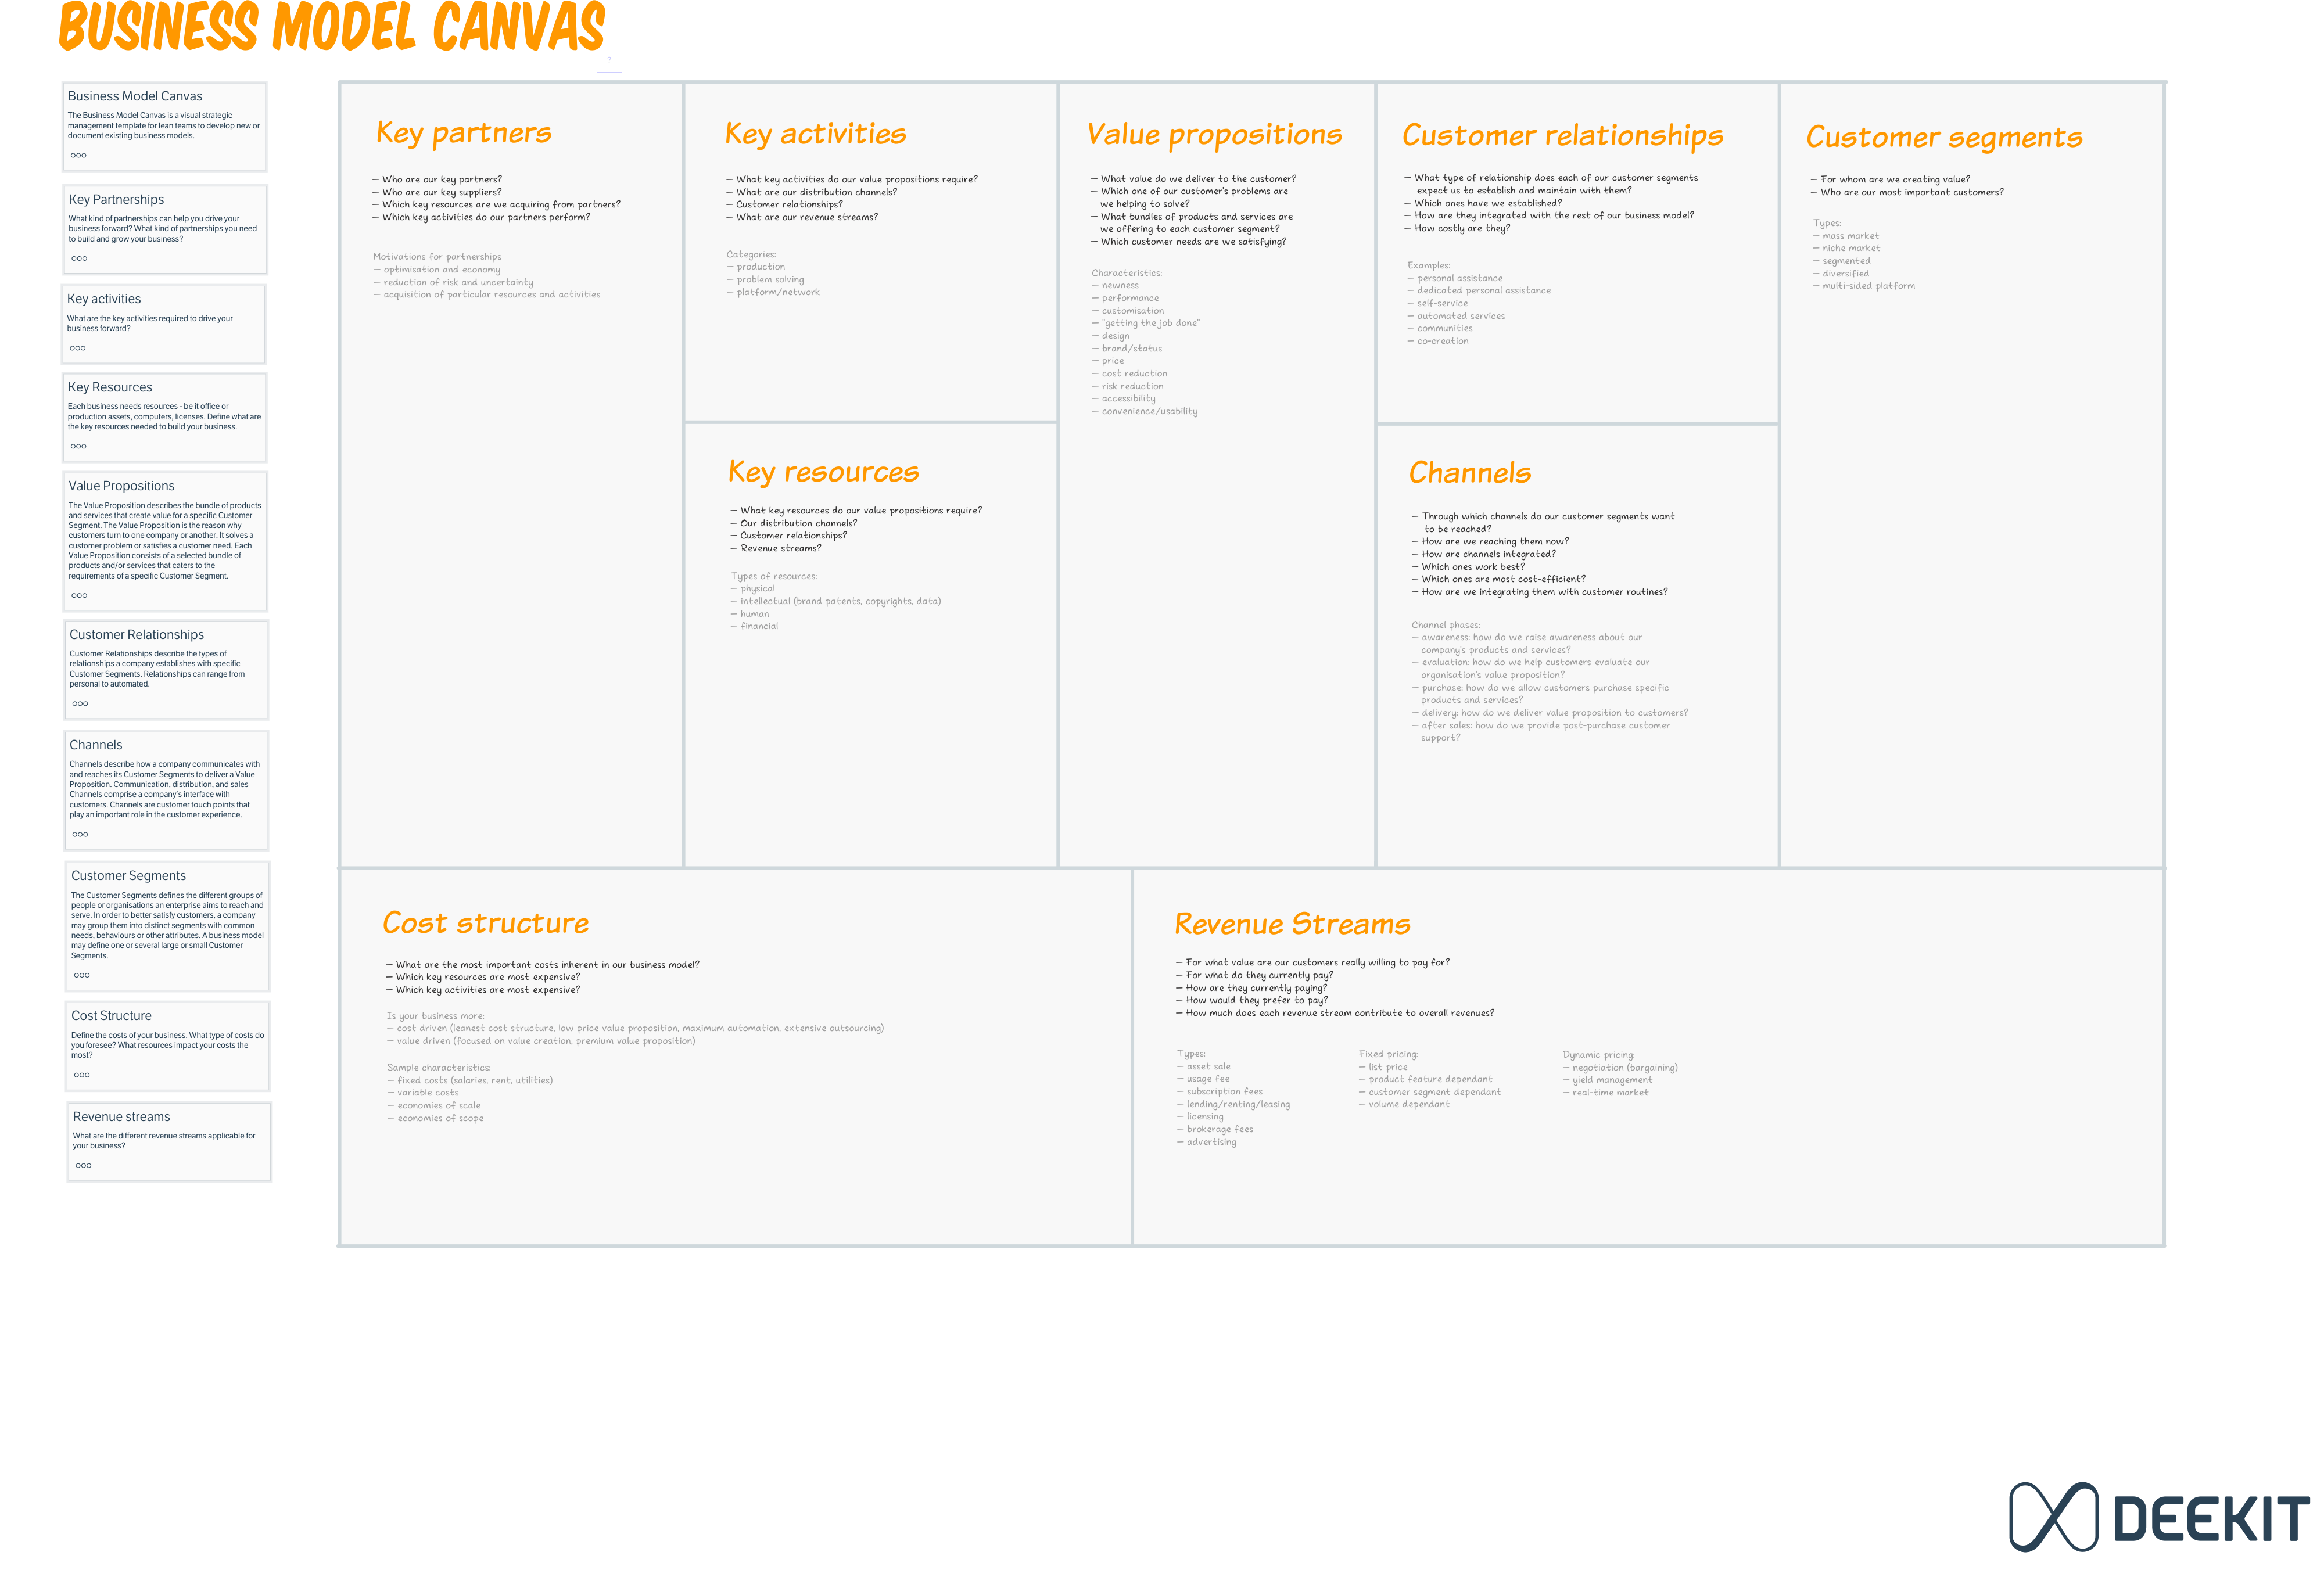 Free Business Model Canvas Template For Visual Strategic